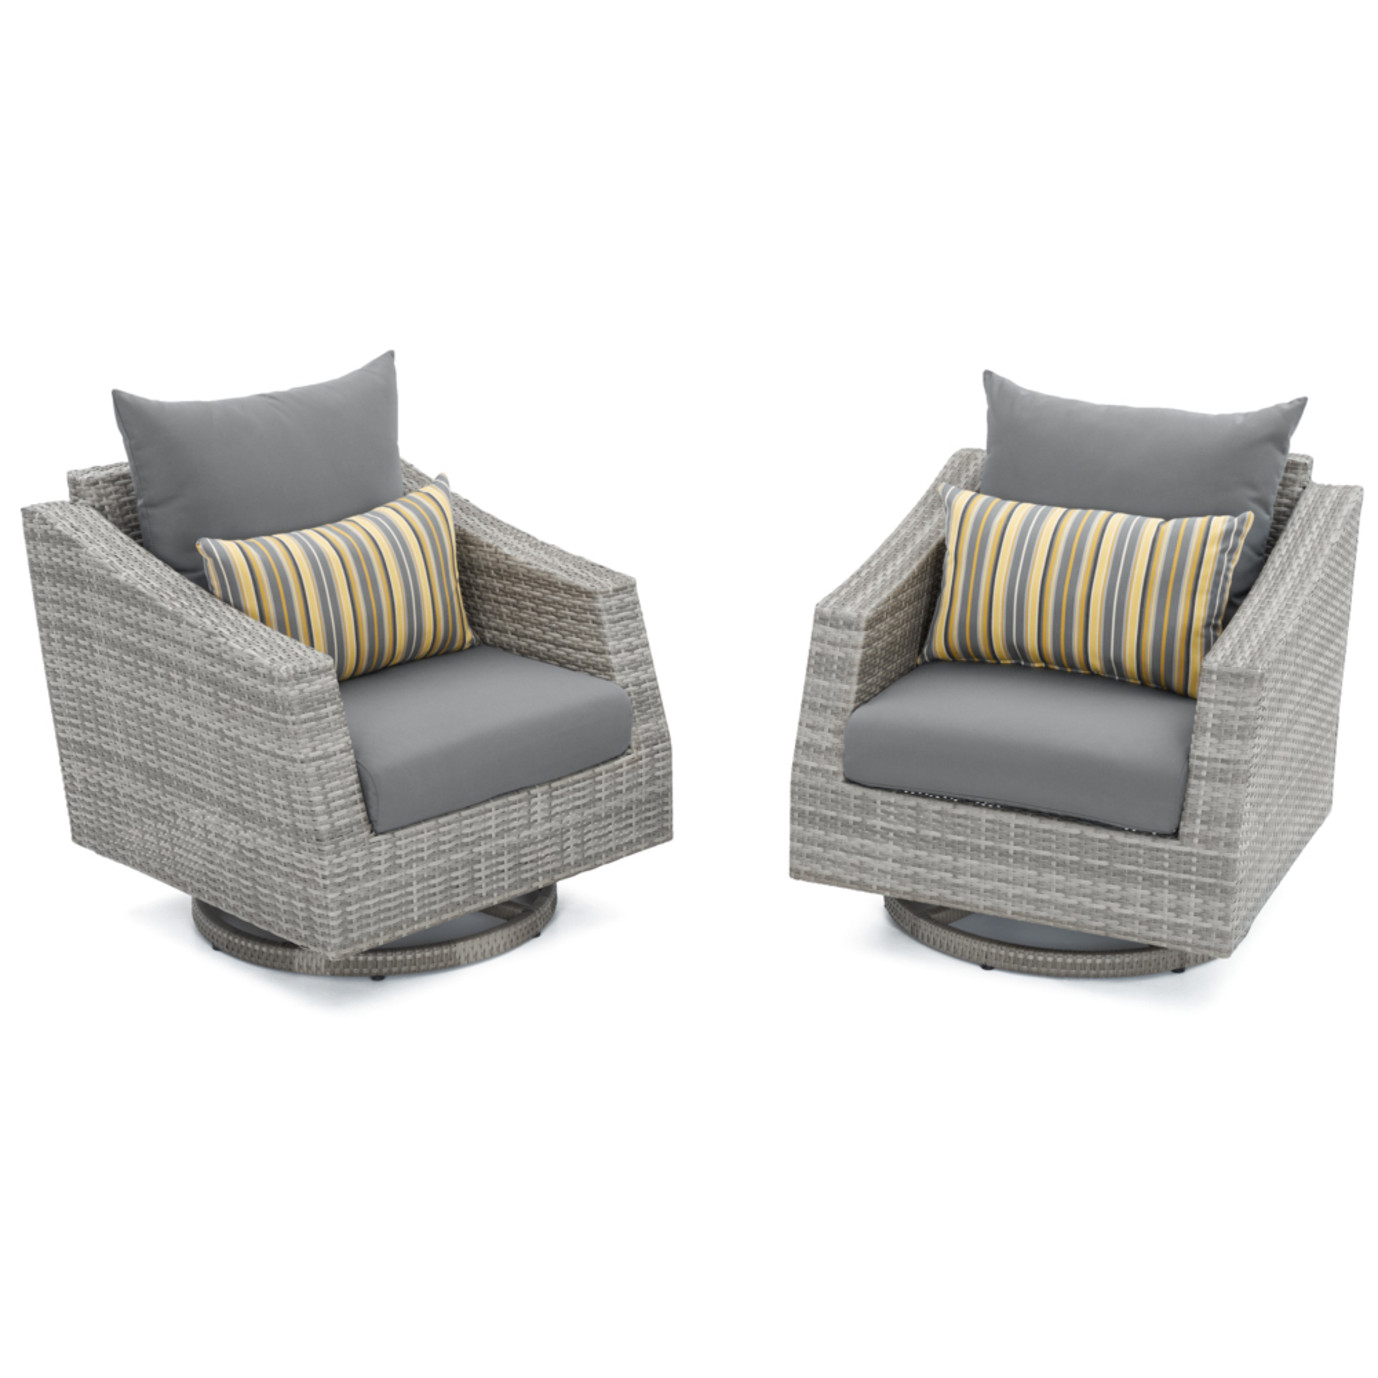 Cannes™ Motion Club Chairs - Charcoal Grey